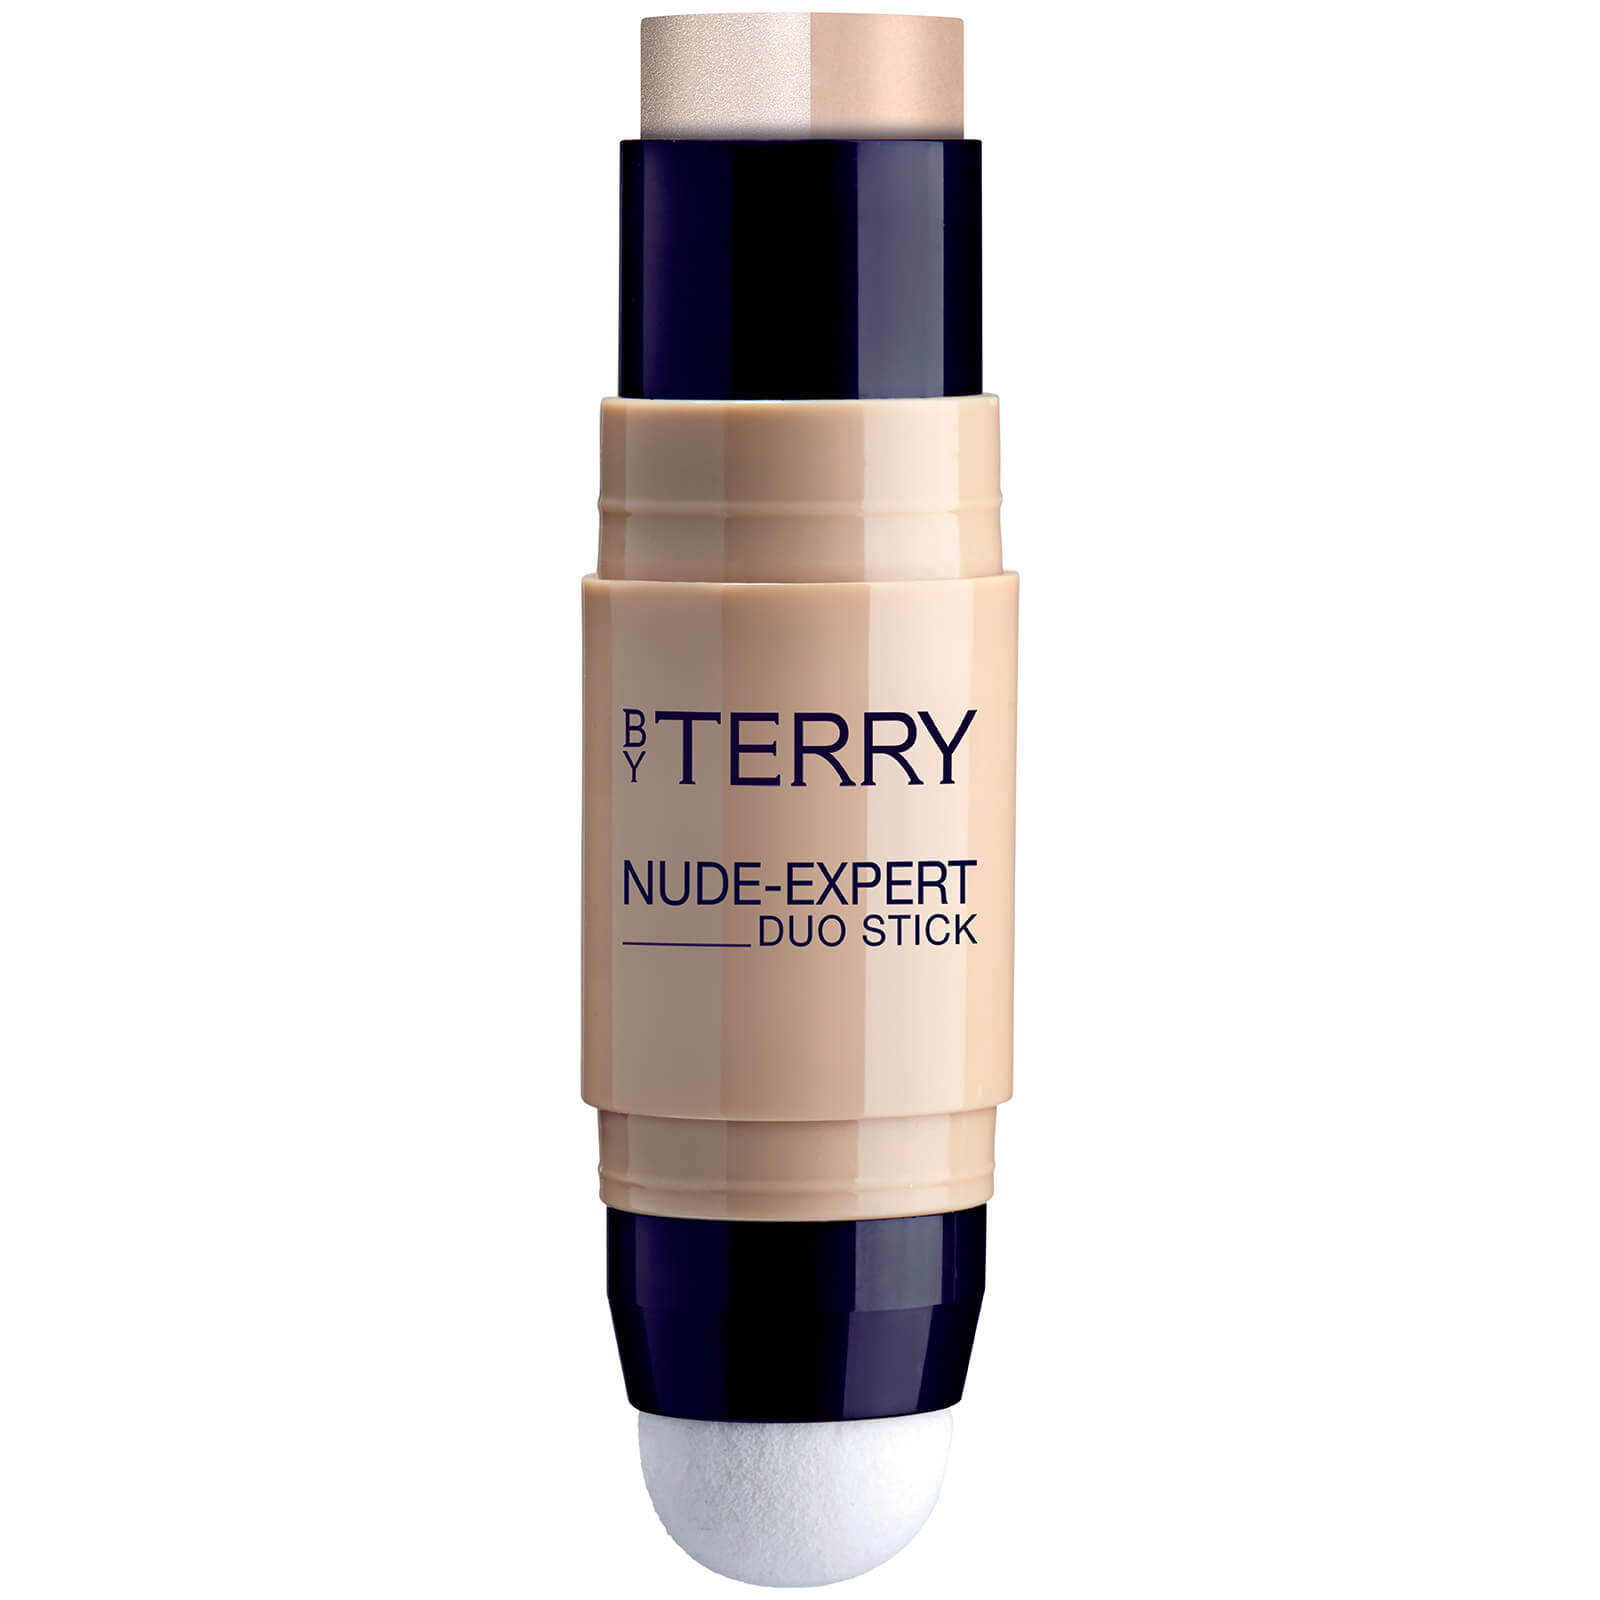 By Terry Nude-Expert Foundation (Various Shades) - 4 . Rosy Beige